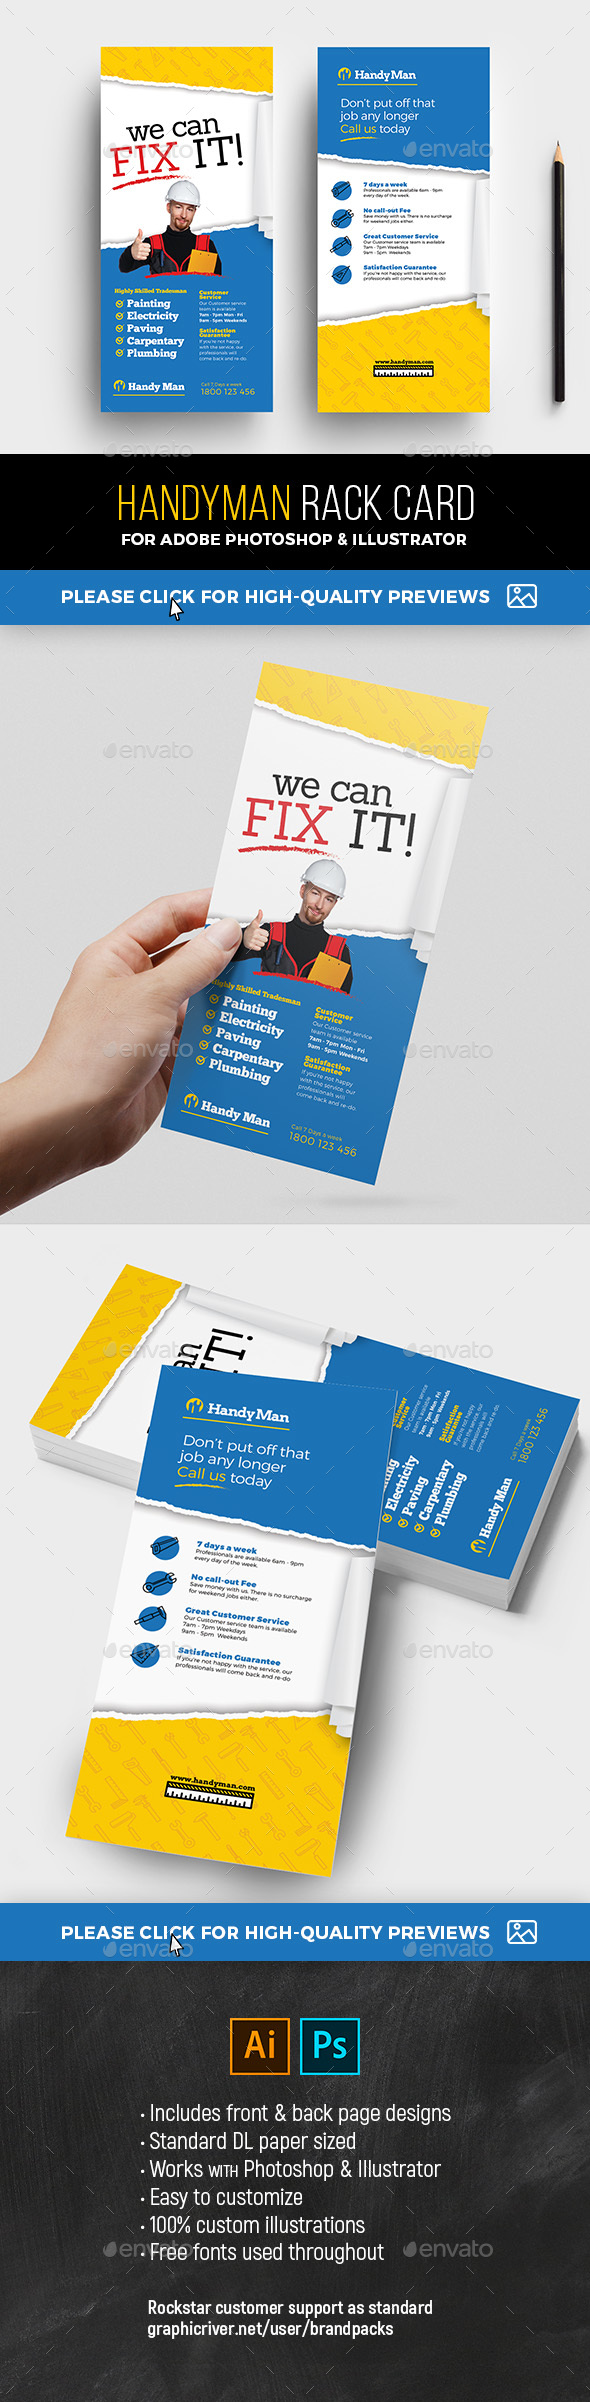 DL Handyman Rack Card Template - Commerce Flyers